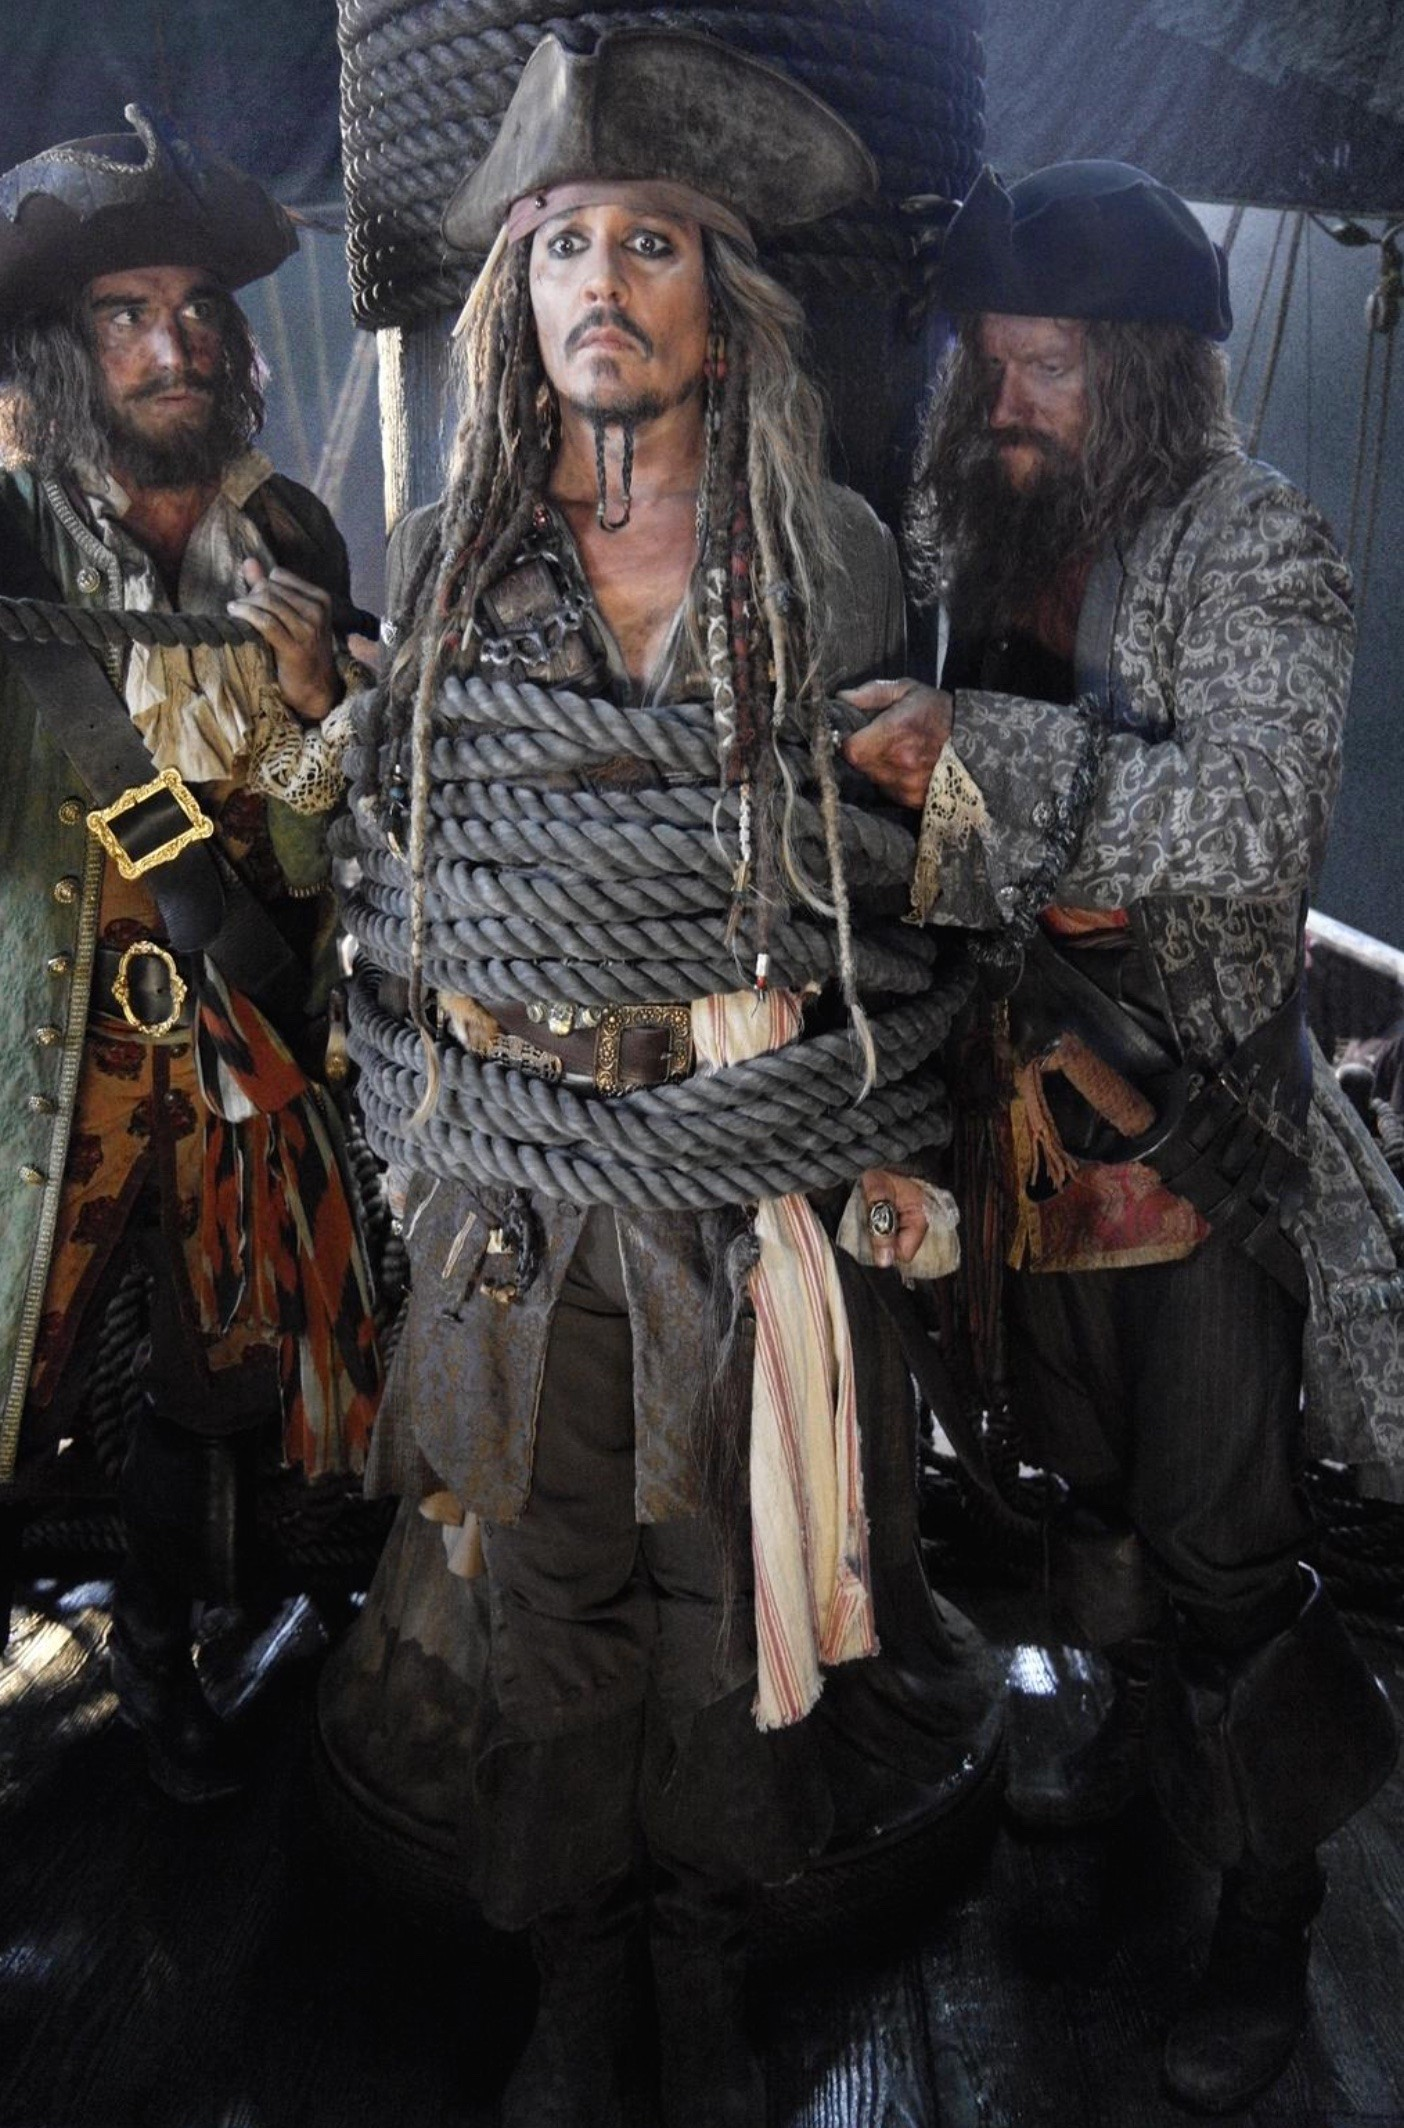 Movie Reviews: Pirates of the Caribbean, Baywatch, The